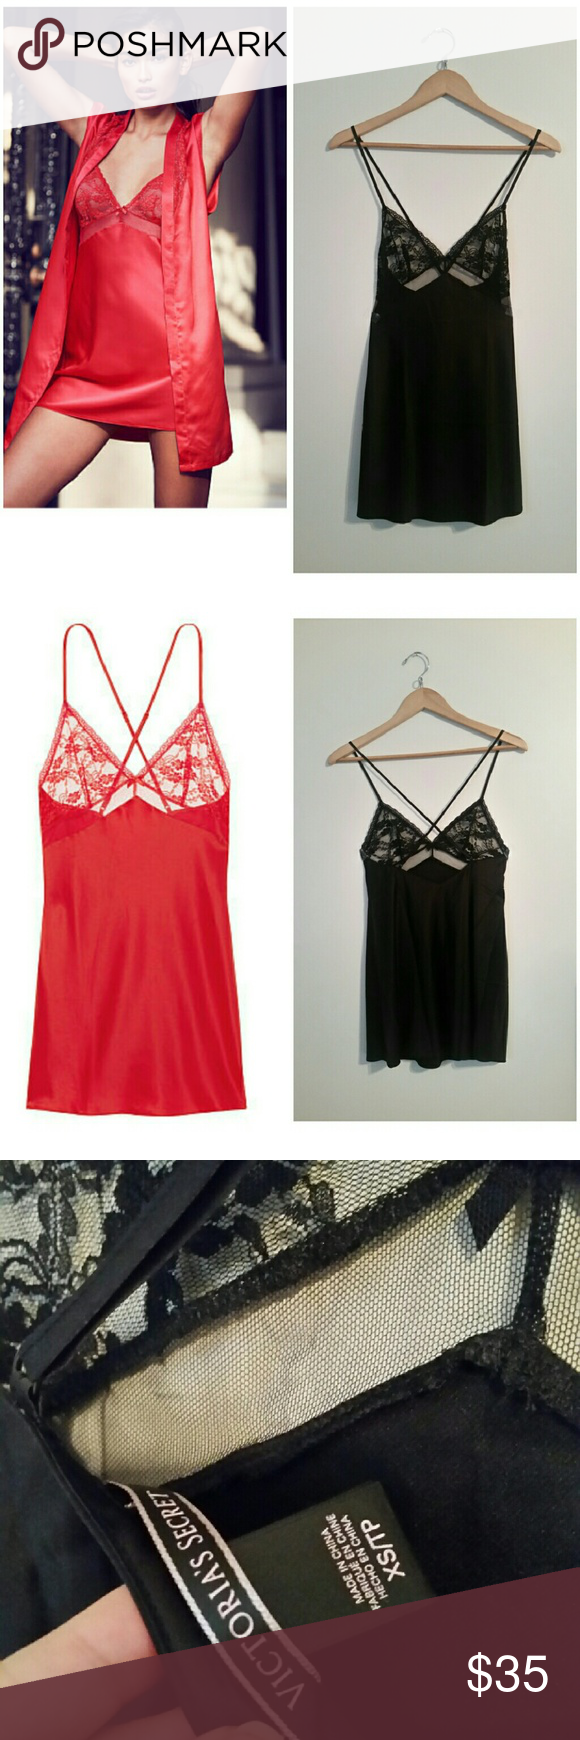 Nwot very sexy black slip New with no tags  Size xs  Lace in the bust. Victoria's Secret Intimates & Sleepwear Chemises & Slips